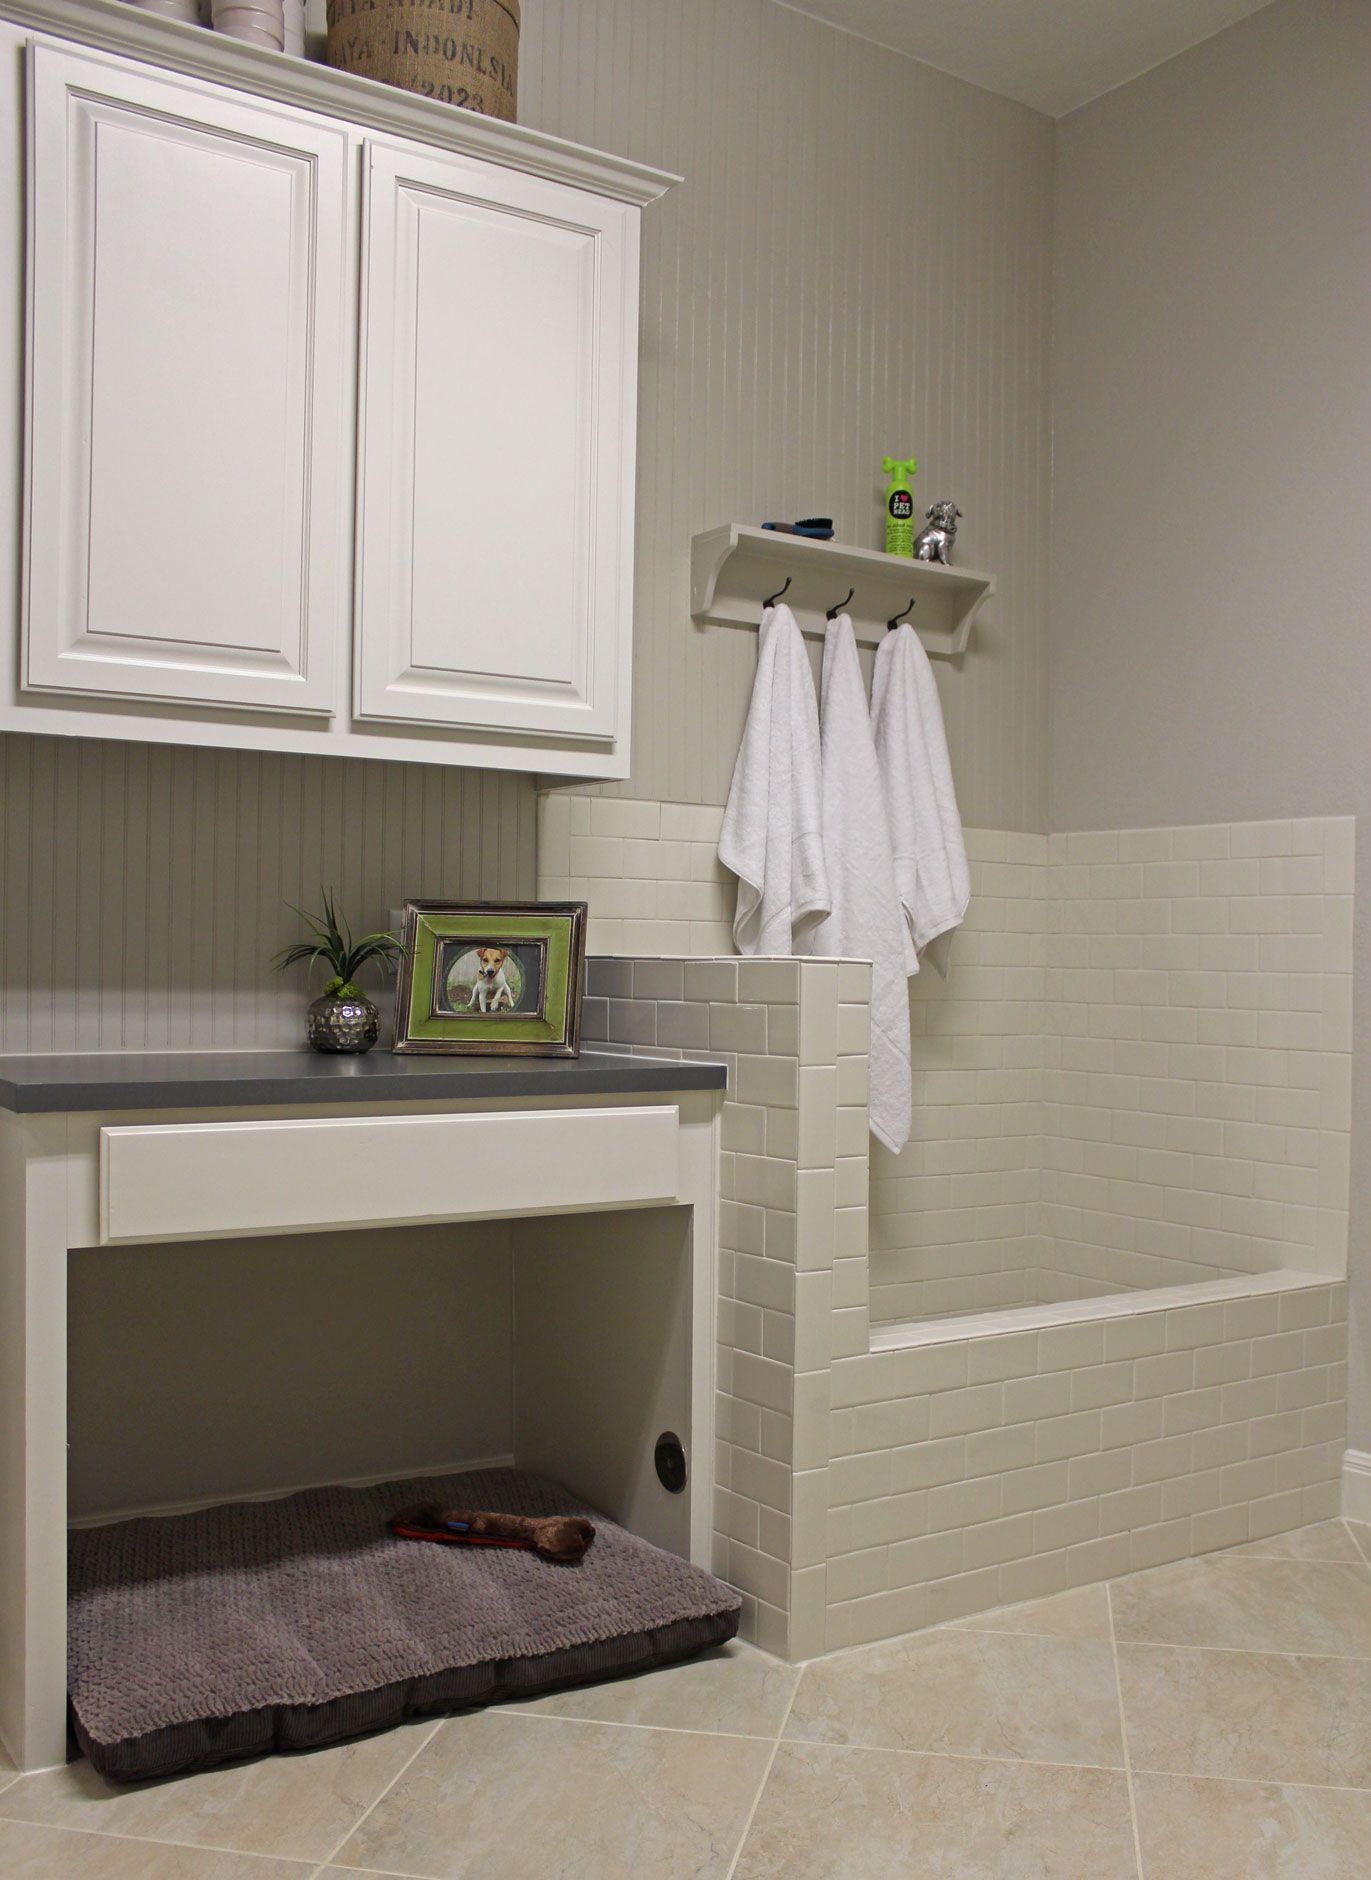 Exact design alex wants for the drop station desk w a pull our laundry room with built in dog shower and space for dog bed with raised panel cabinet doors by taylorcraft cabinet door company in paint grade material solutioingenieria Images